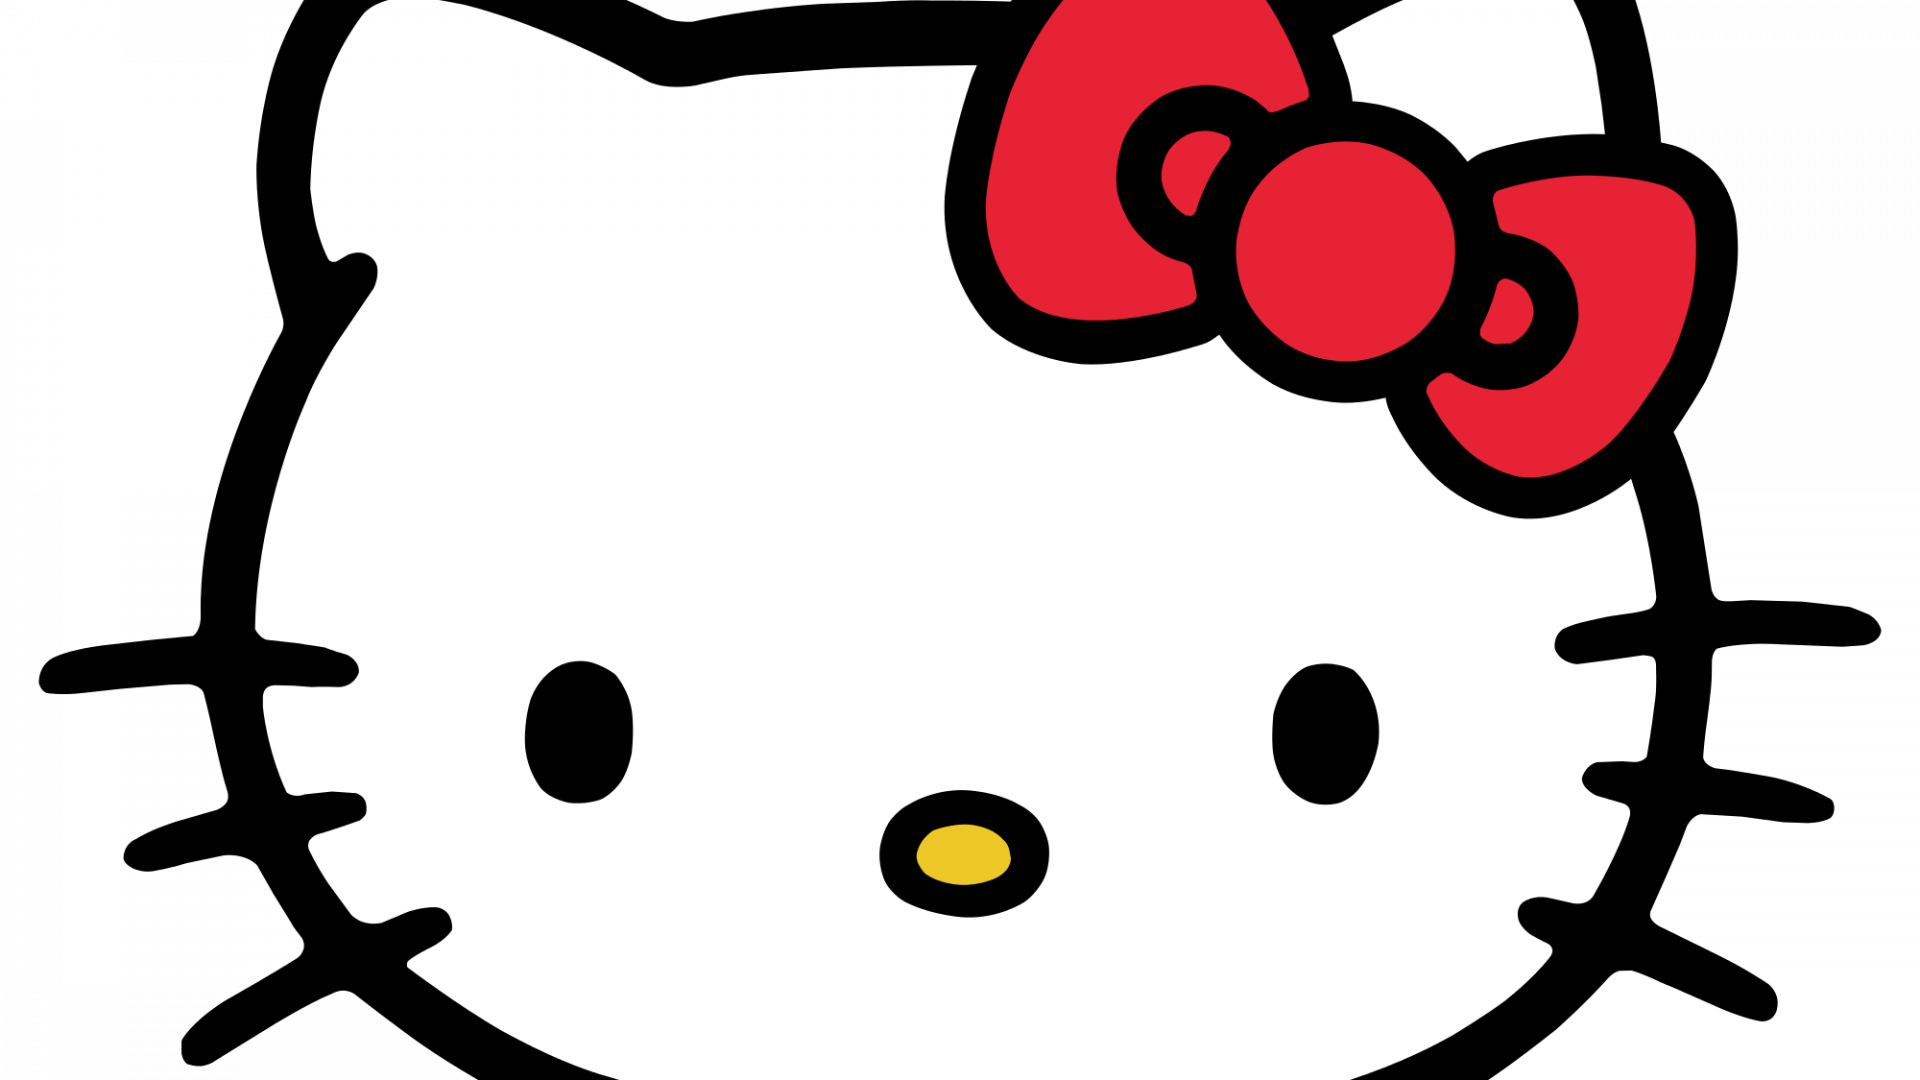 Hello Kitty Head ClipArt in PNG File - HD Wallpapers ... - Hello Kitty Face